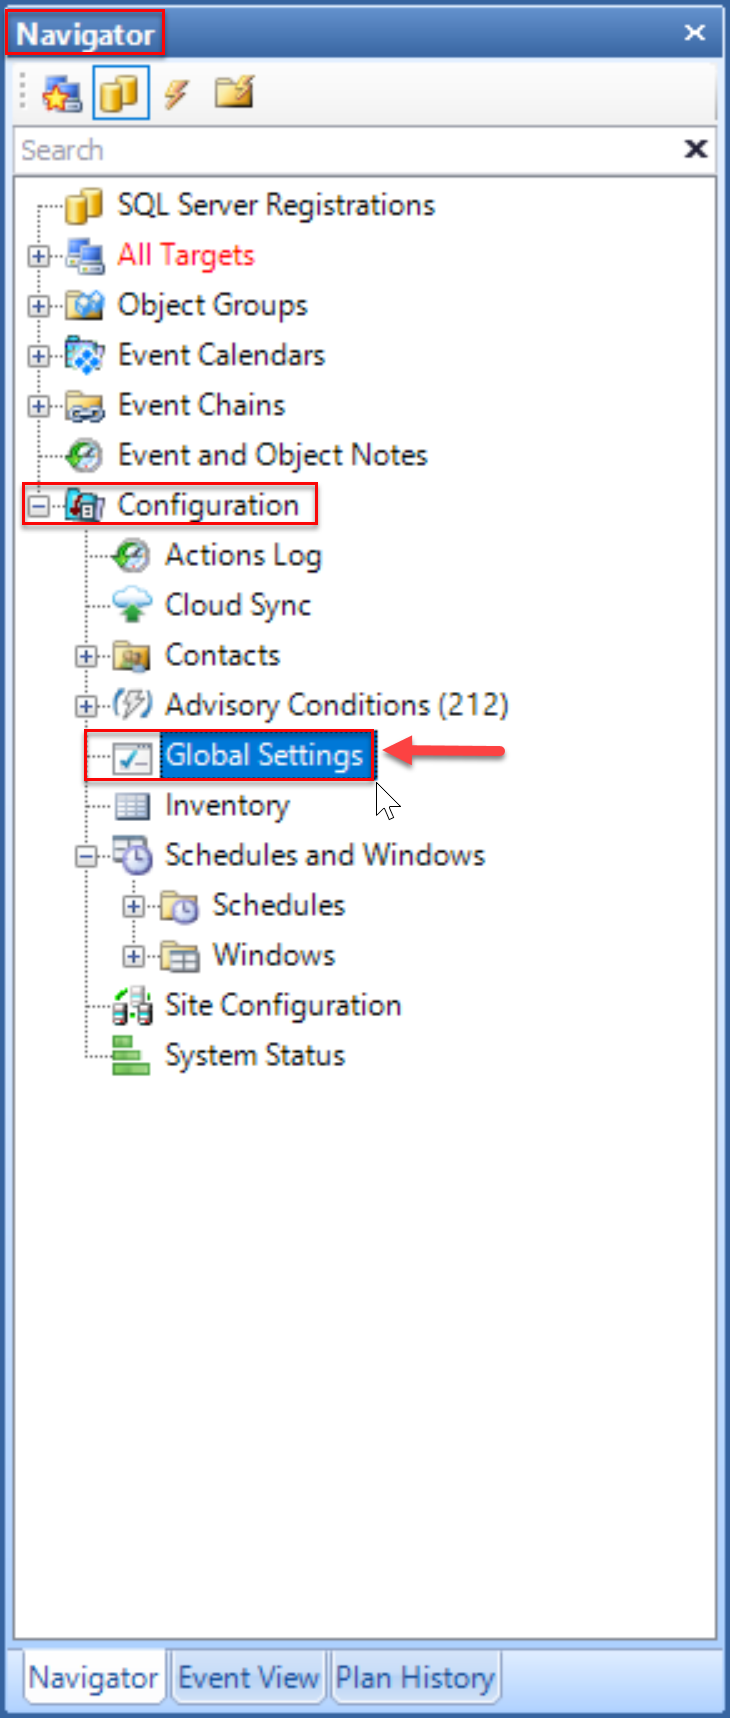 SentryOne select Global Settings in the Navigator pane